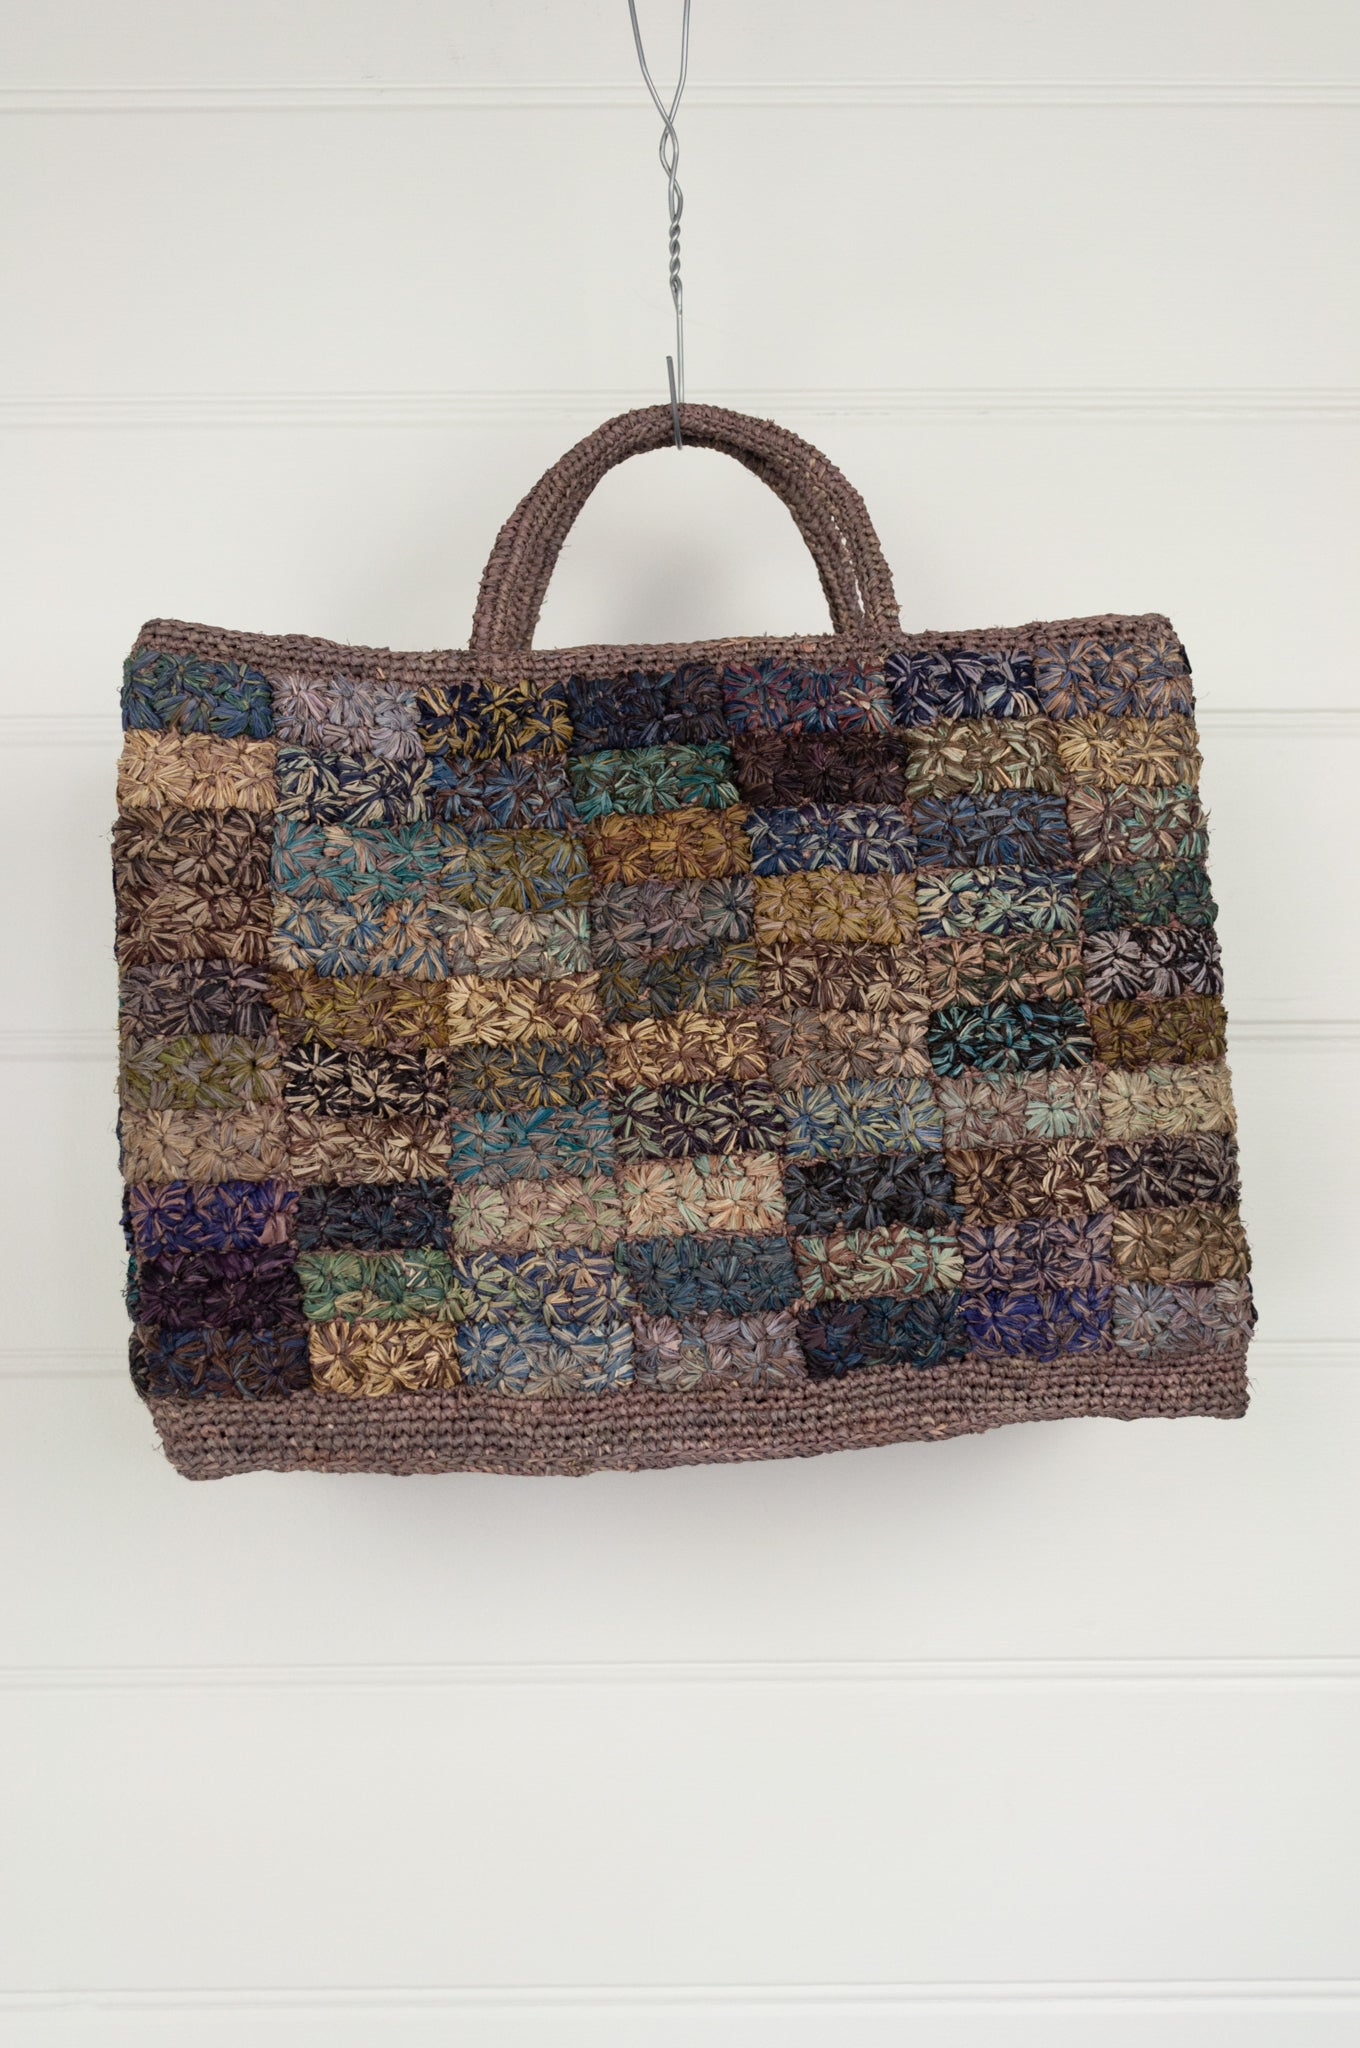 Sophie Digard hand woven macrame raffia bag is a patchwork of subtle tones of olive, coffee, teal and lilac.